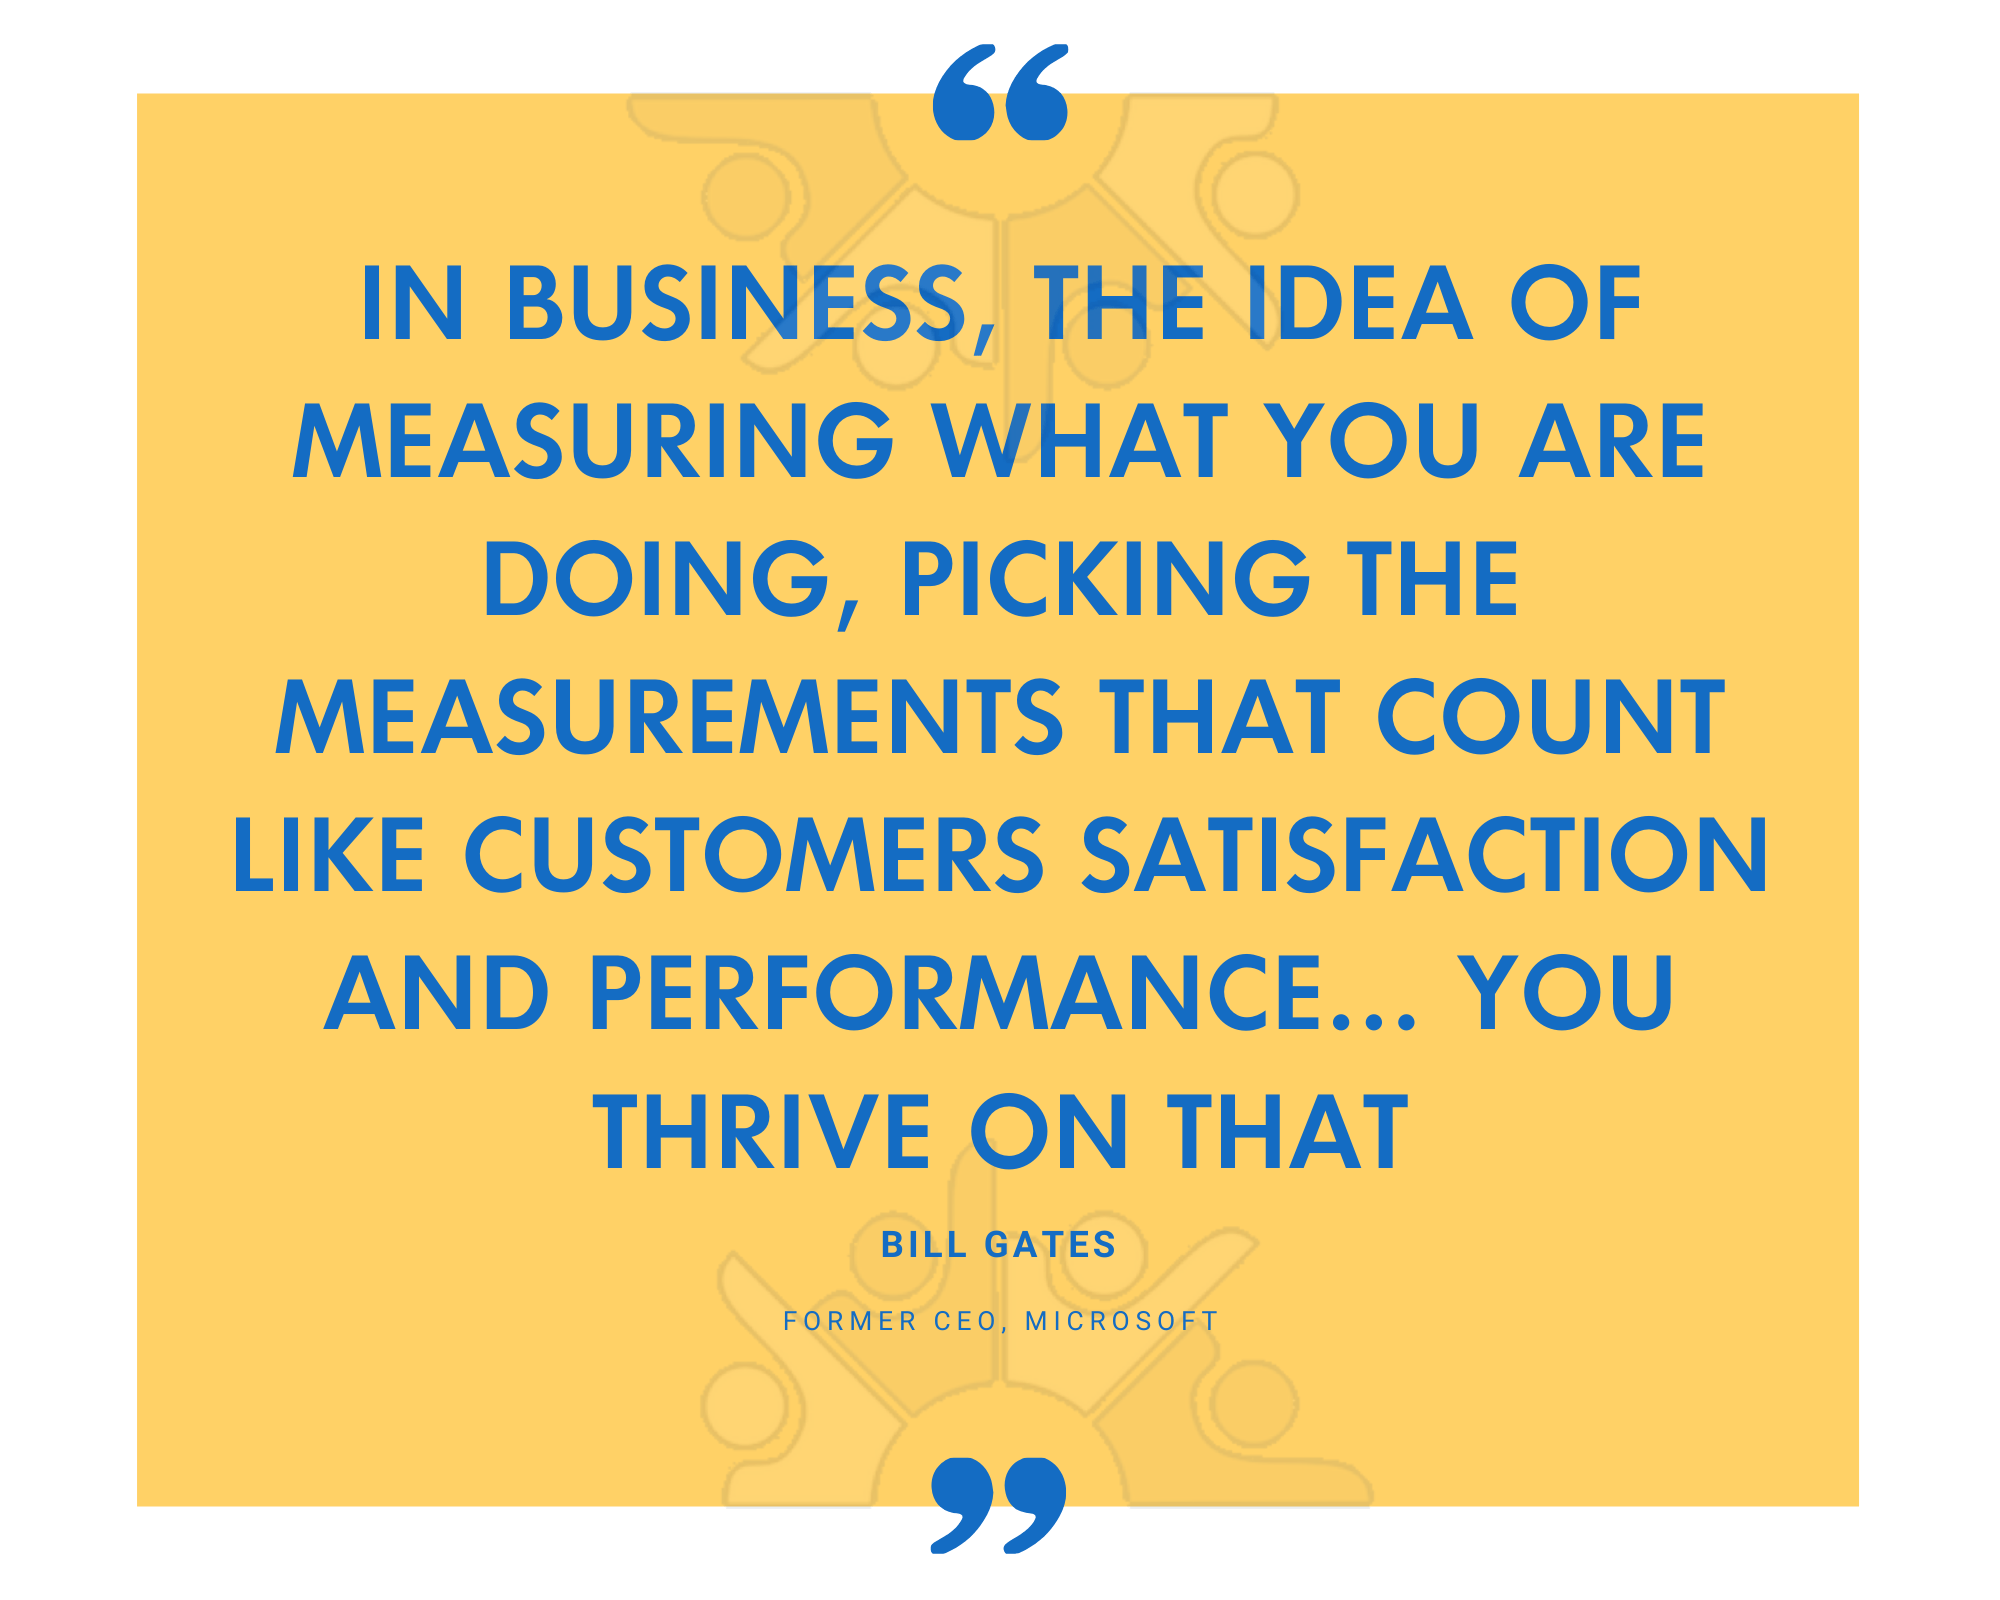 QUOTE in business the idea of measuring what you are doing